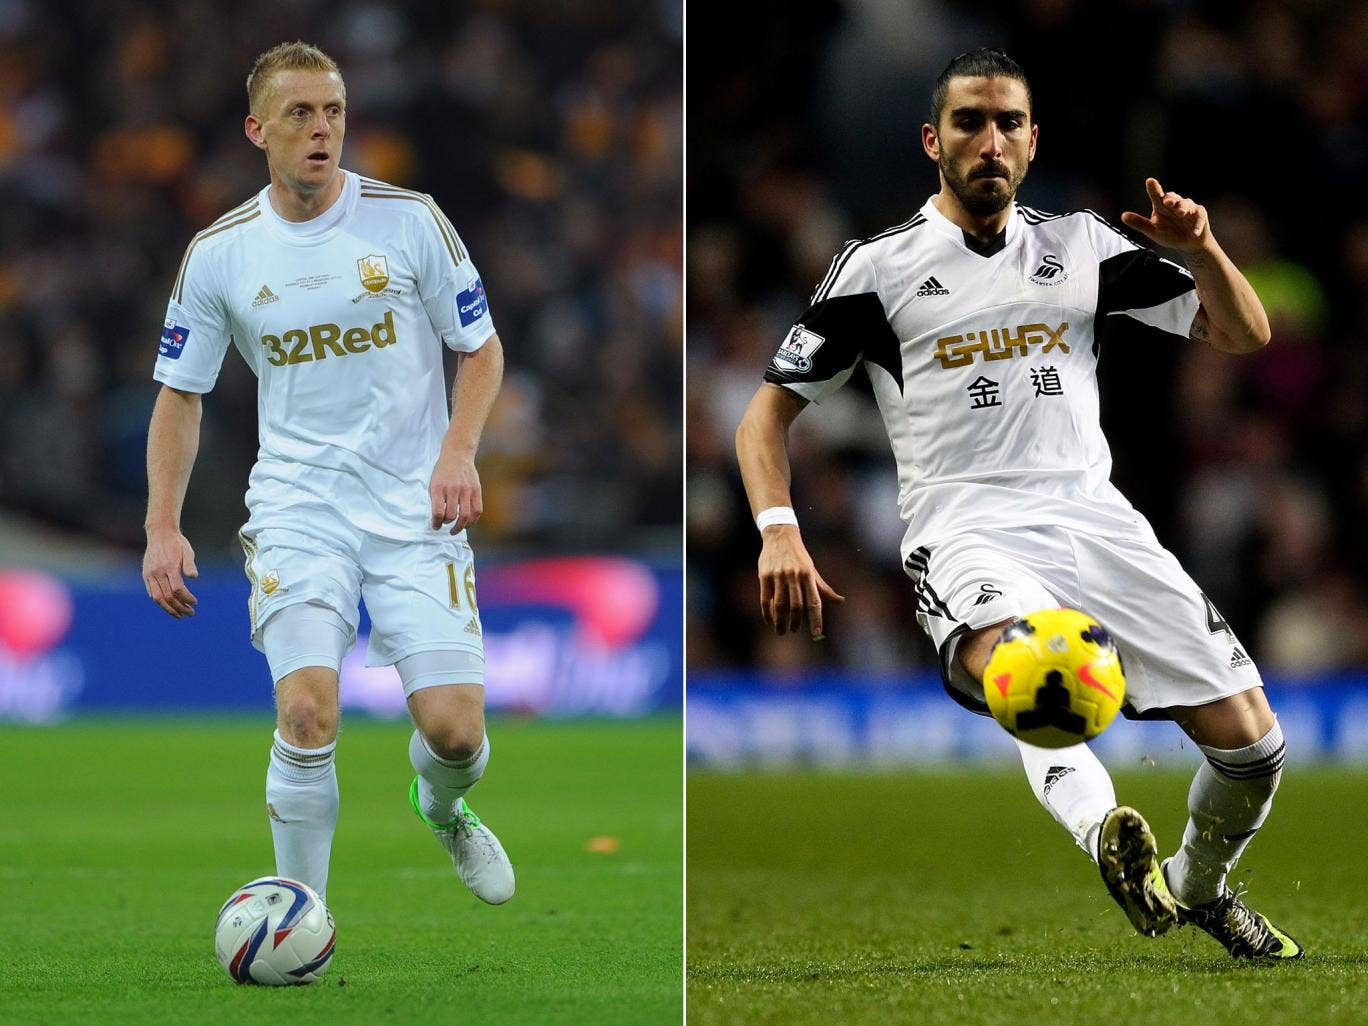 Garry Monk and Chico Flores were involved in a training ground bust-up last week, the club have confirmed